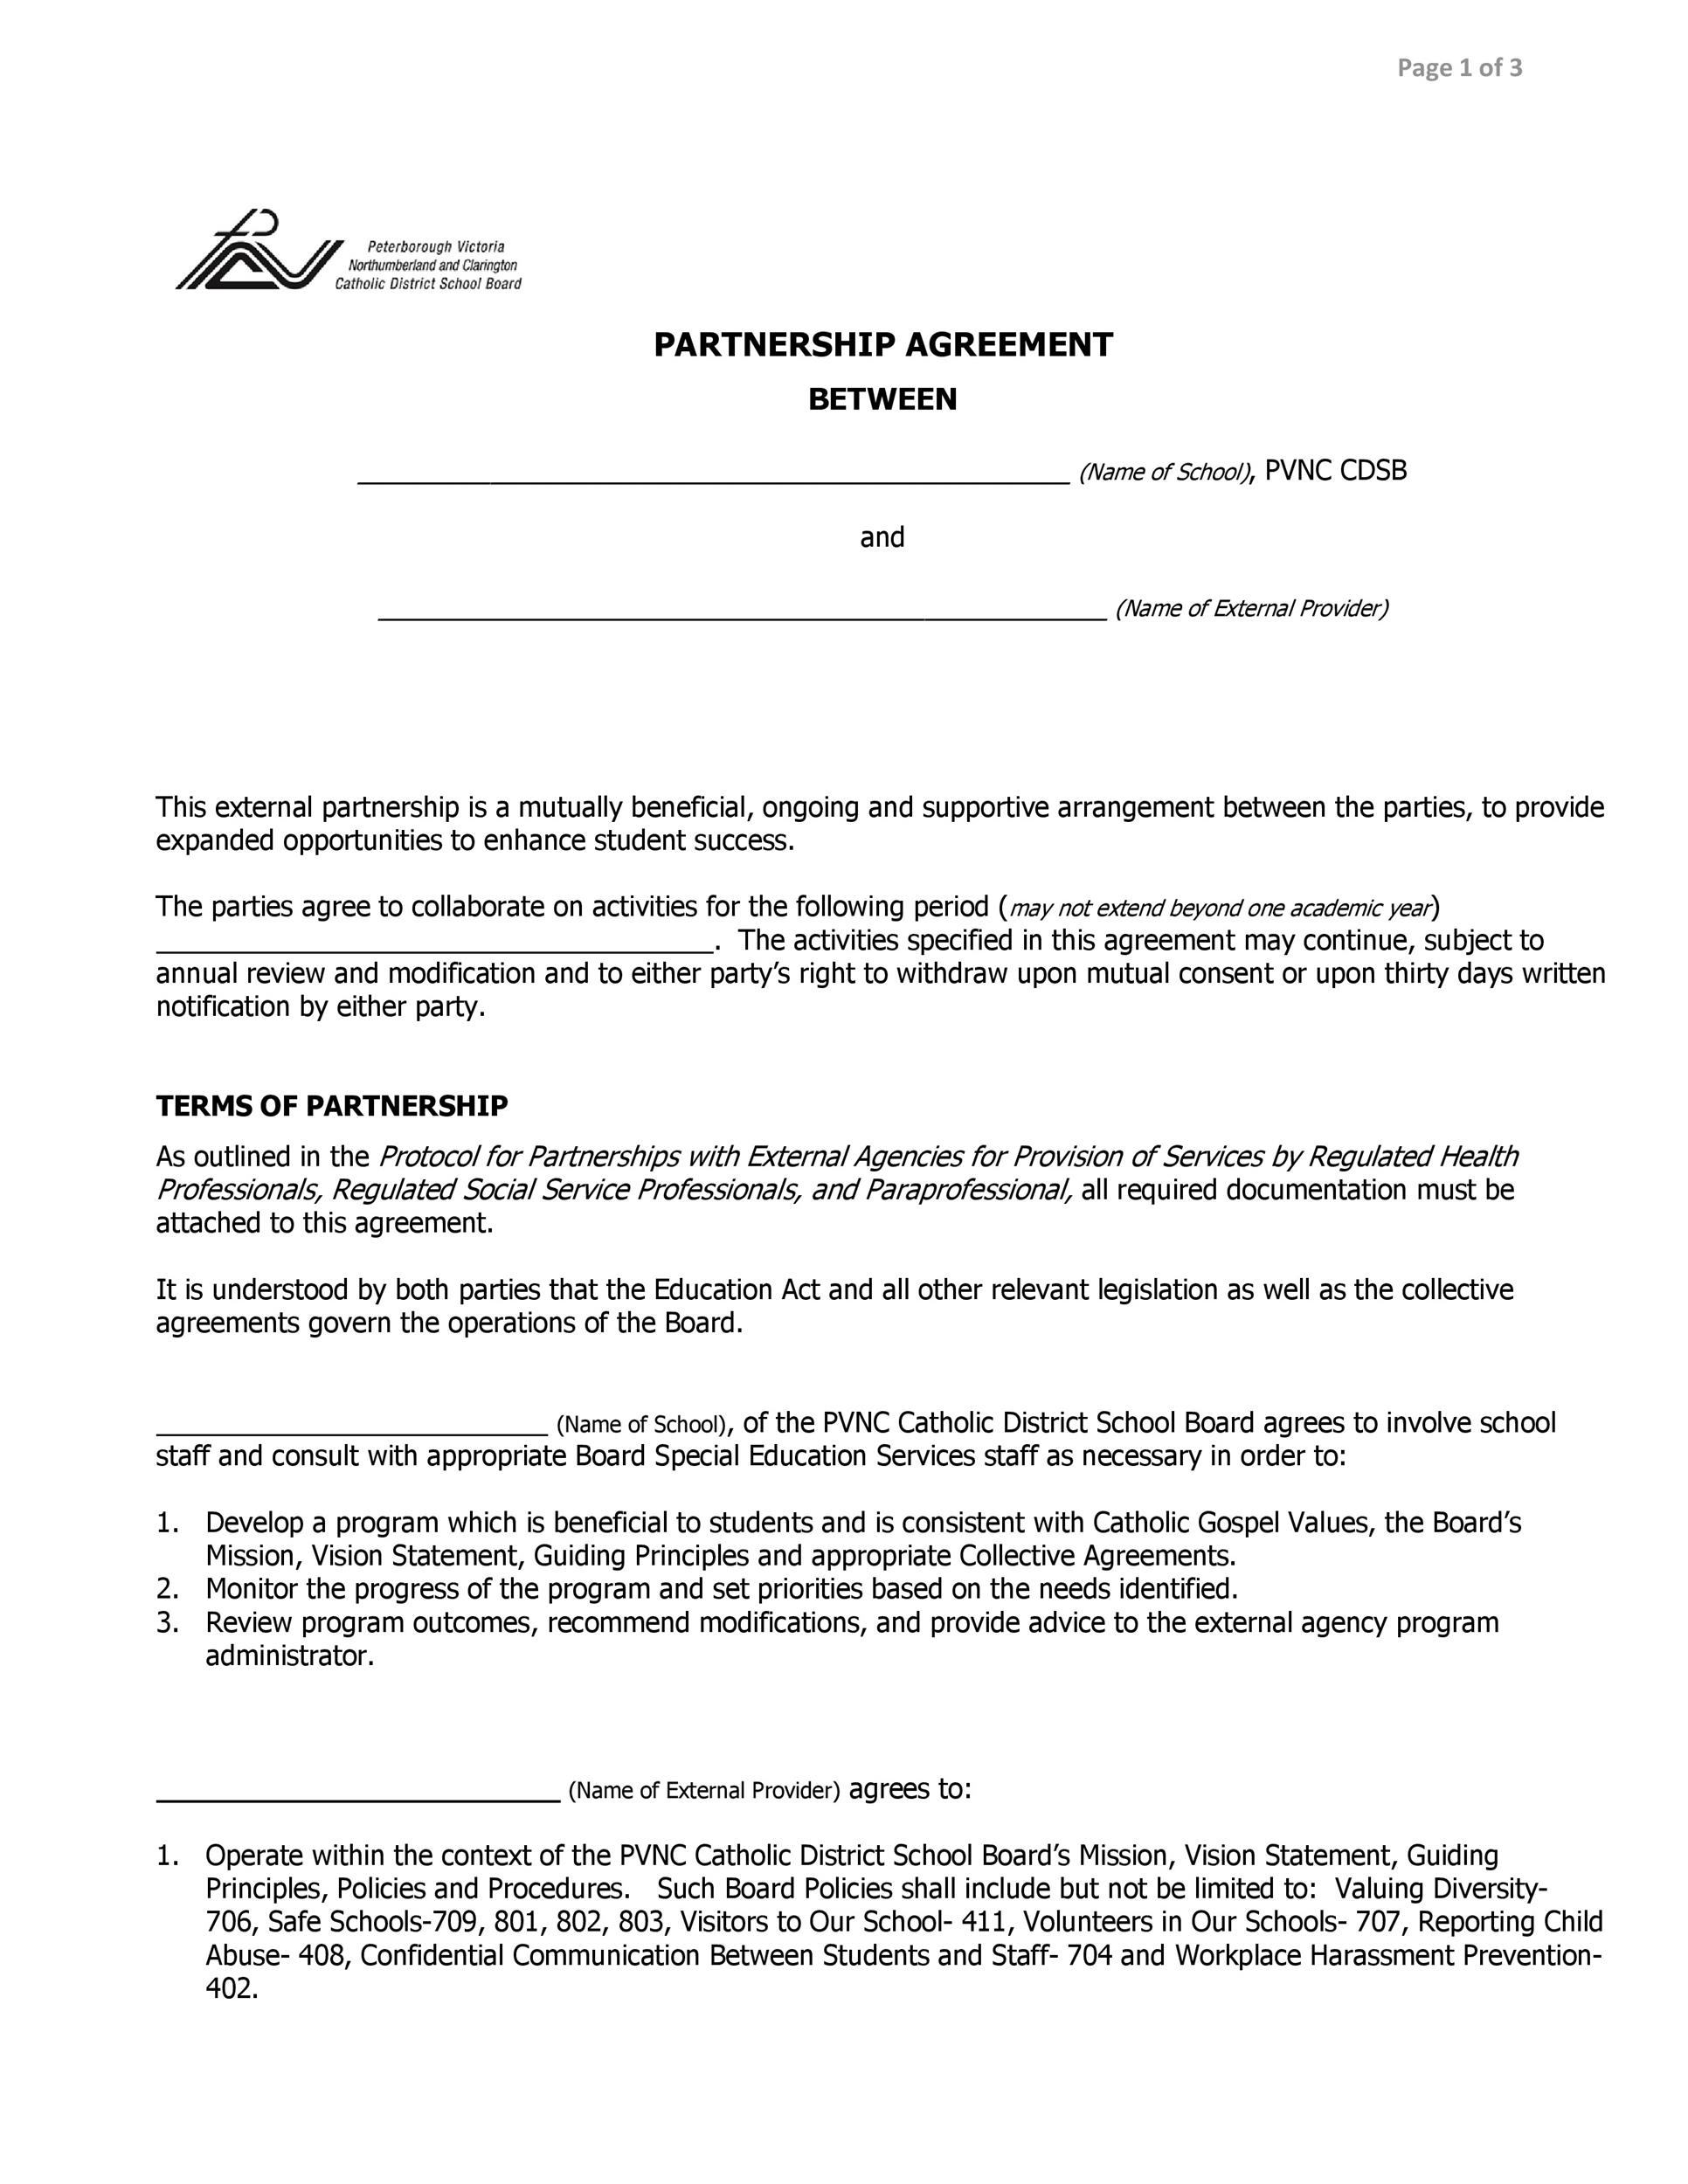 40 FREE Partnership Agreement Templates Business General – Simple Business Partnership Agreement